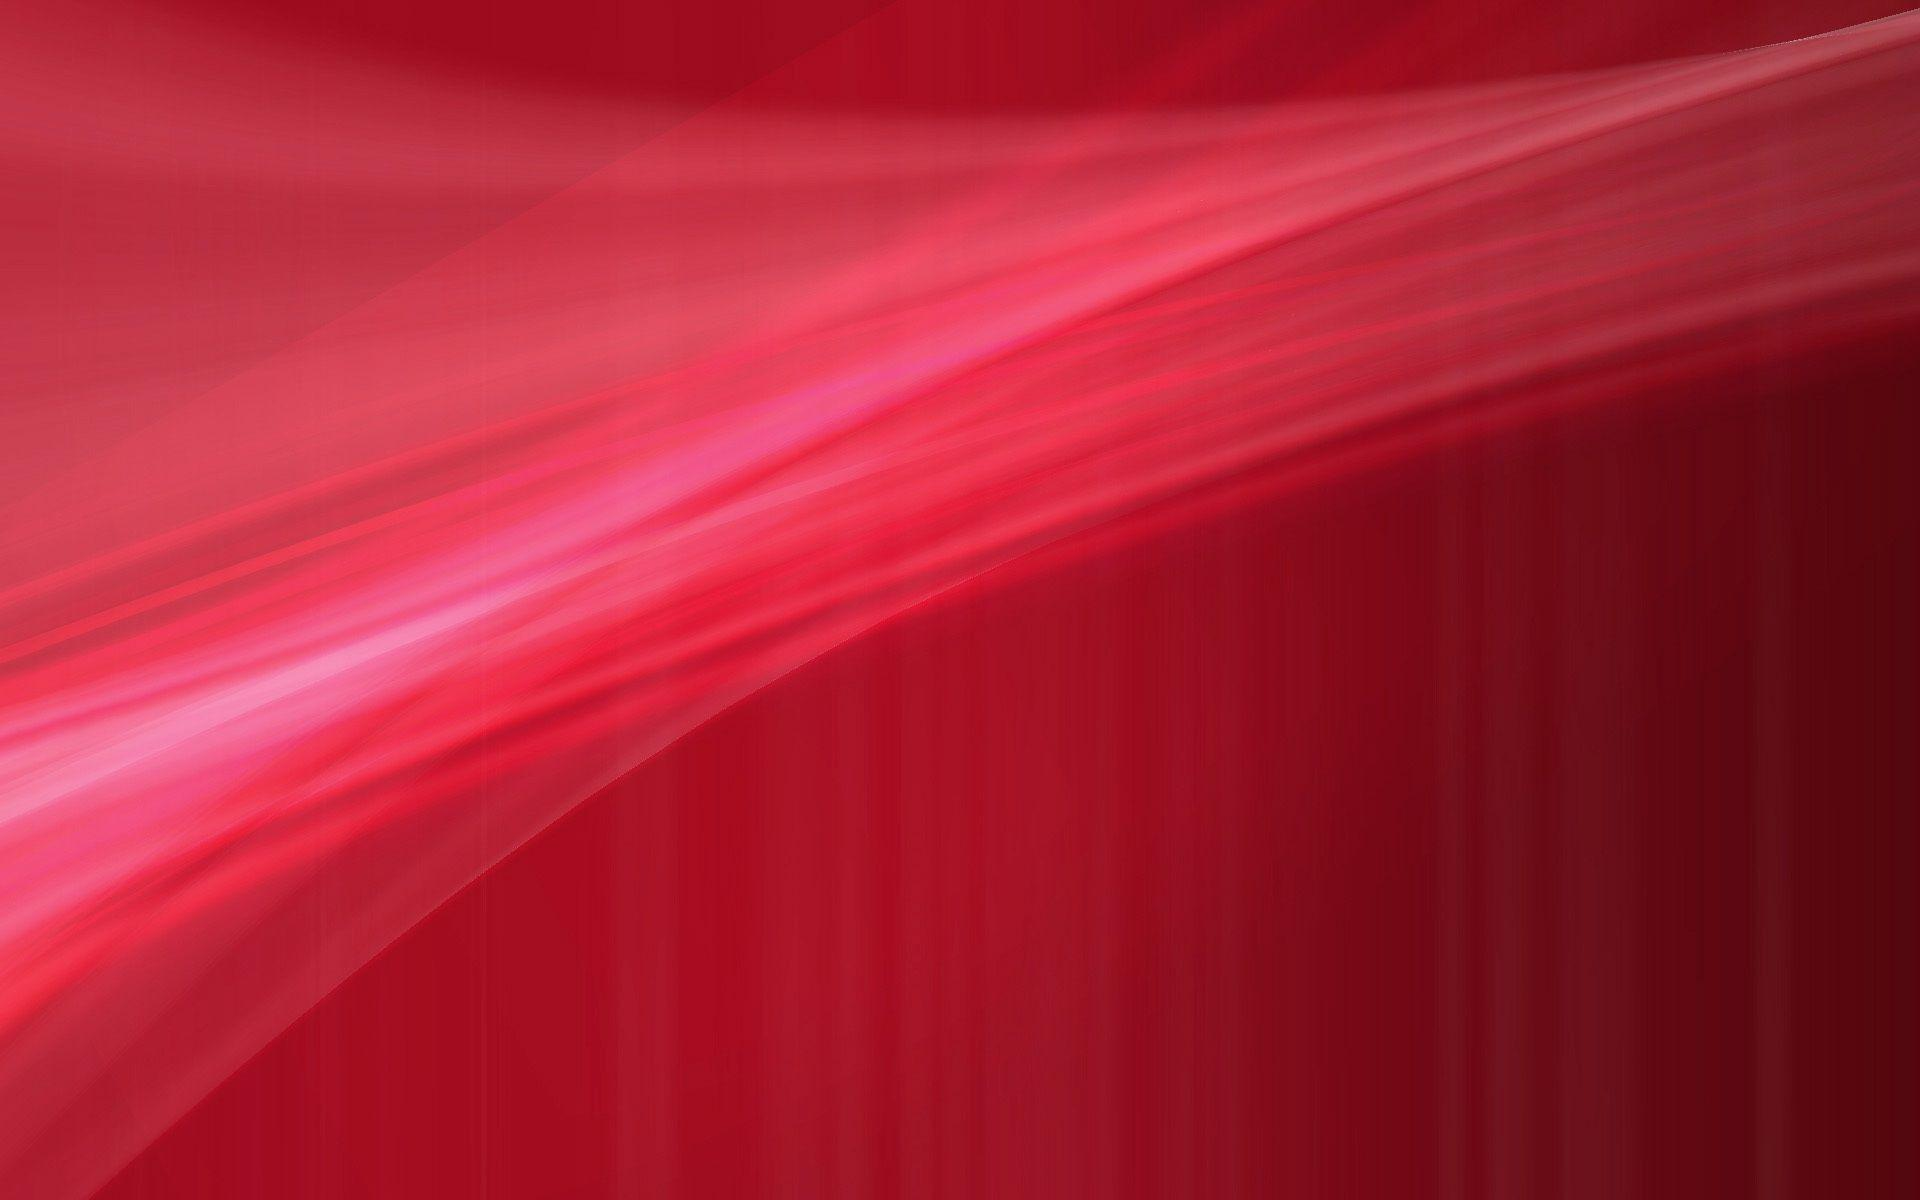 Cool Red Wallpaper Backgrounds Wallpapers